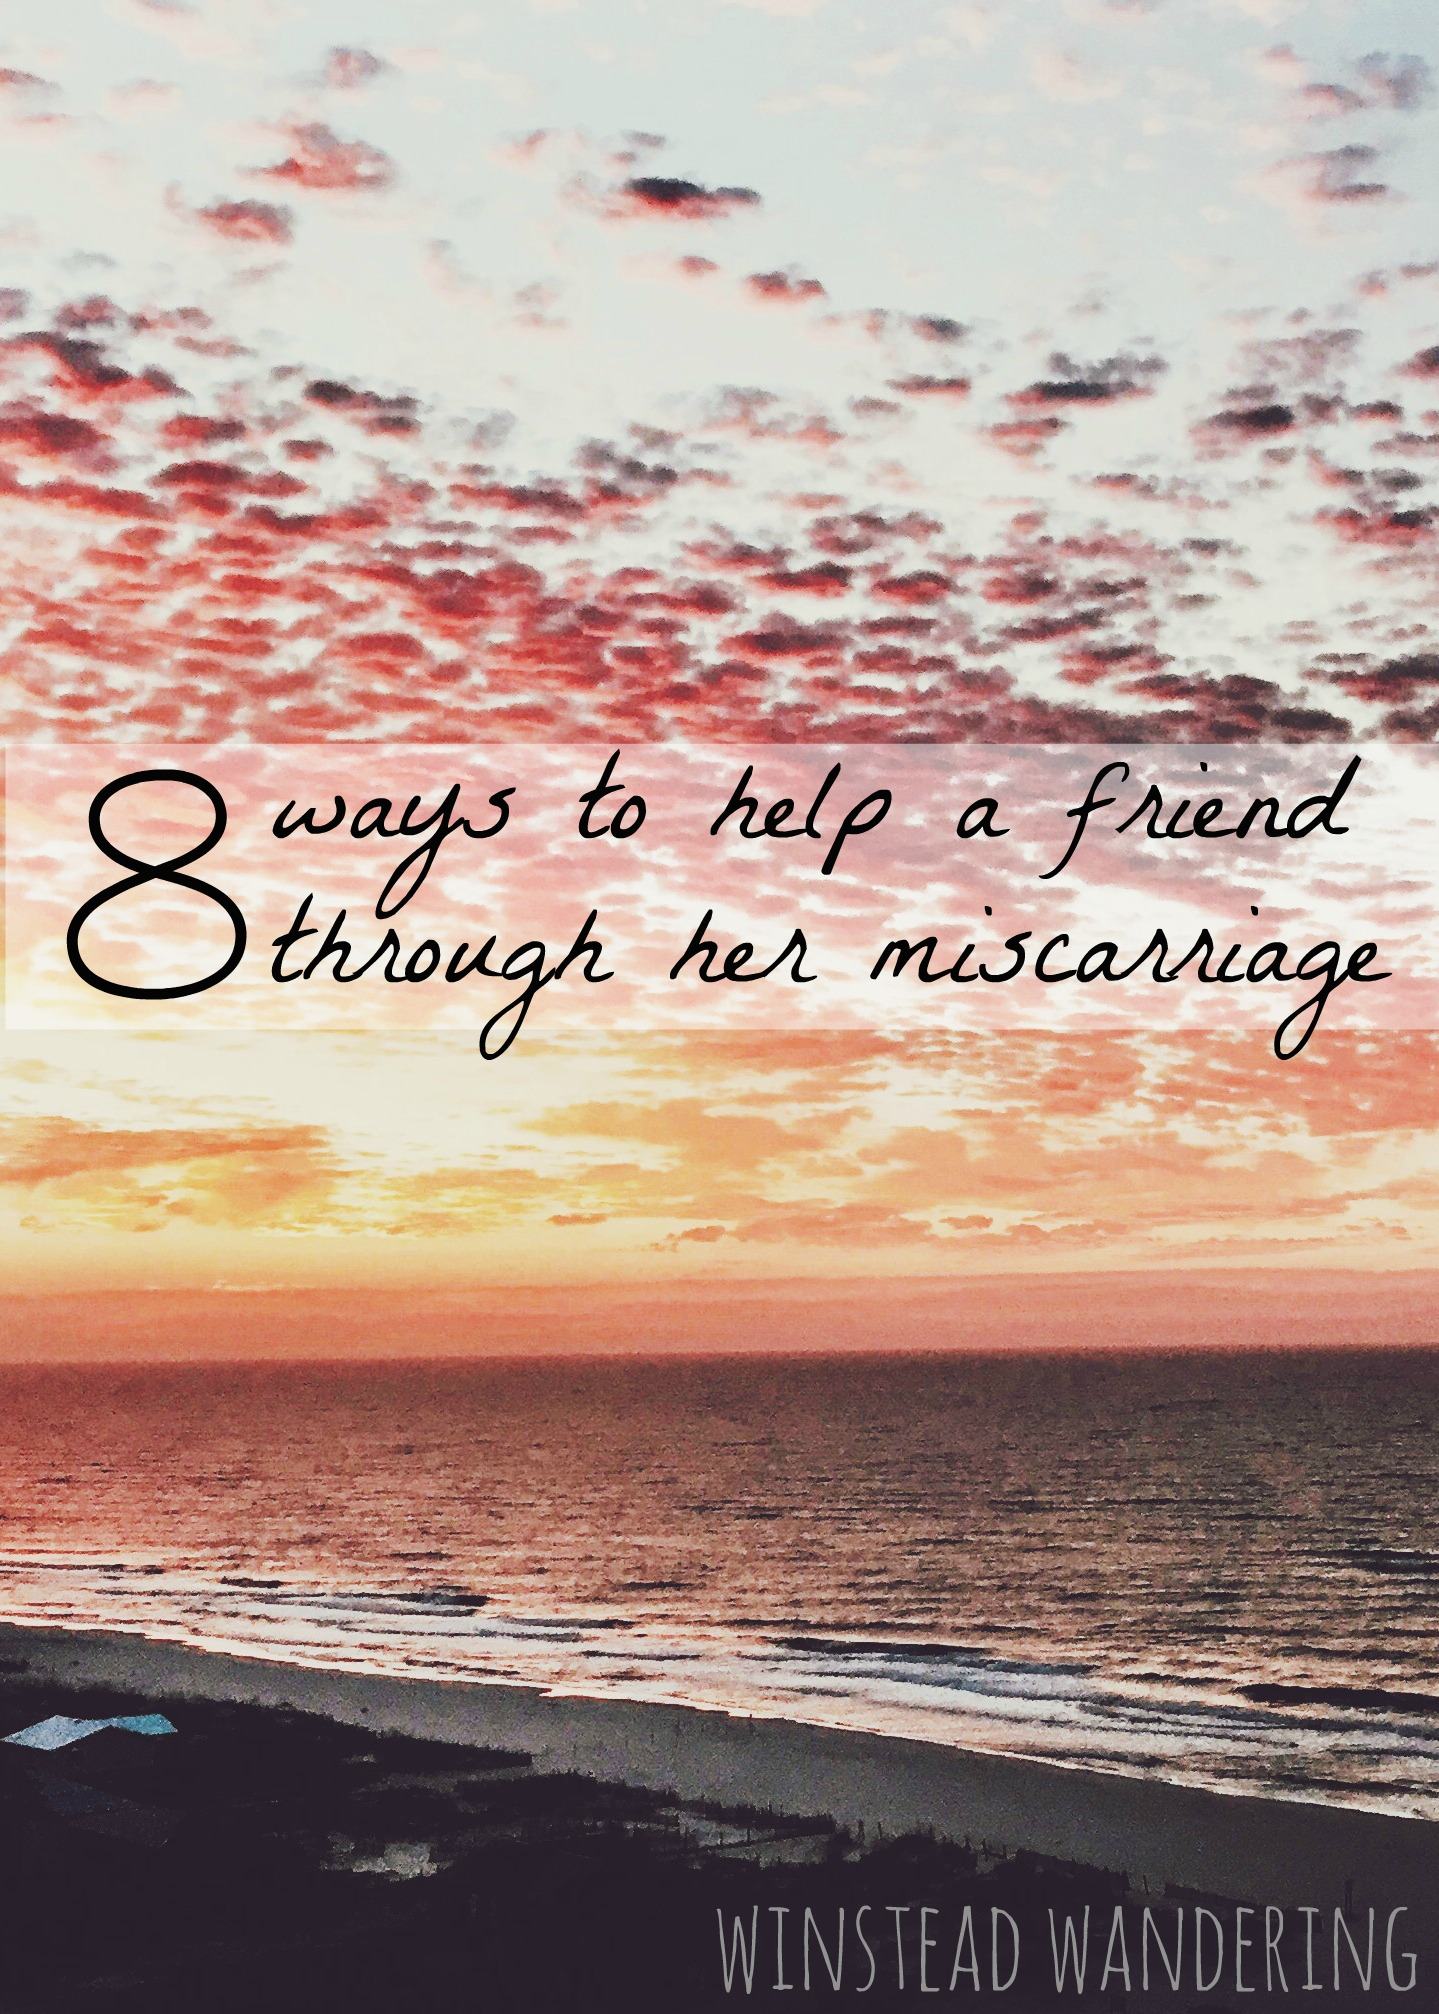 8 practical ways to help a friend through her miscarriage | winstead wandering